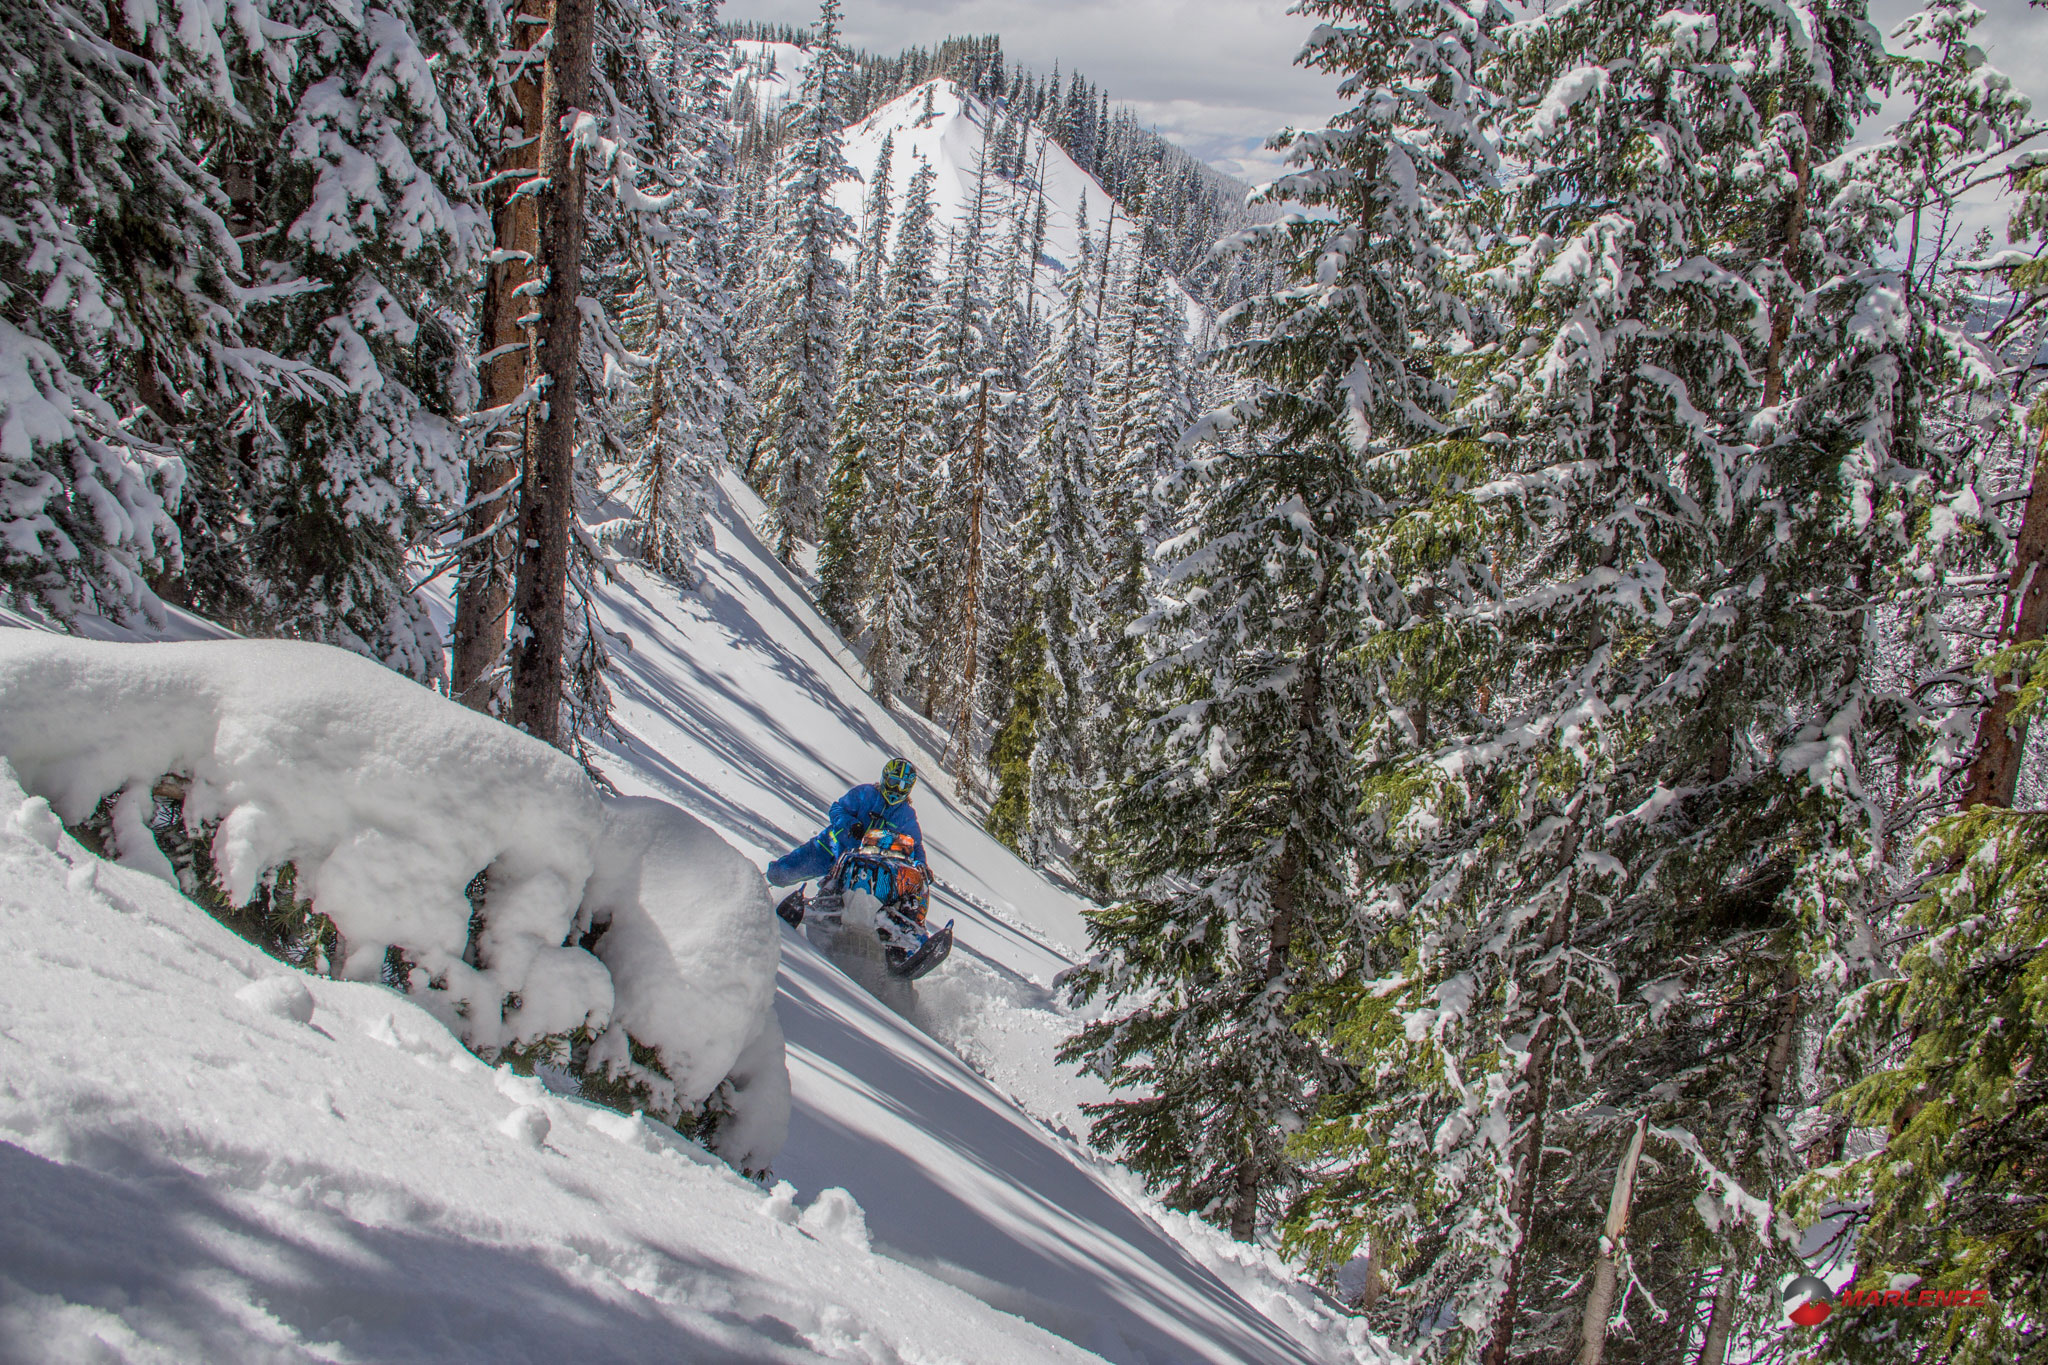 Adam Onasch in the Sticky Spring Snow - Photo by Matt Entz